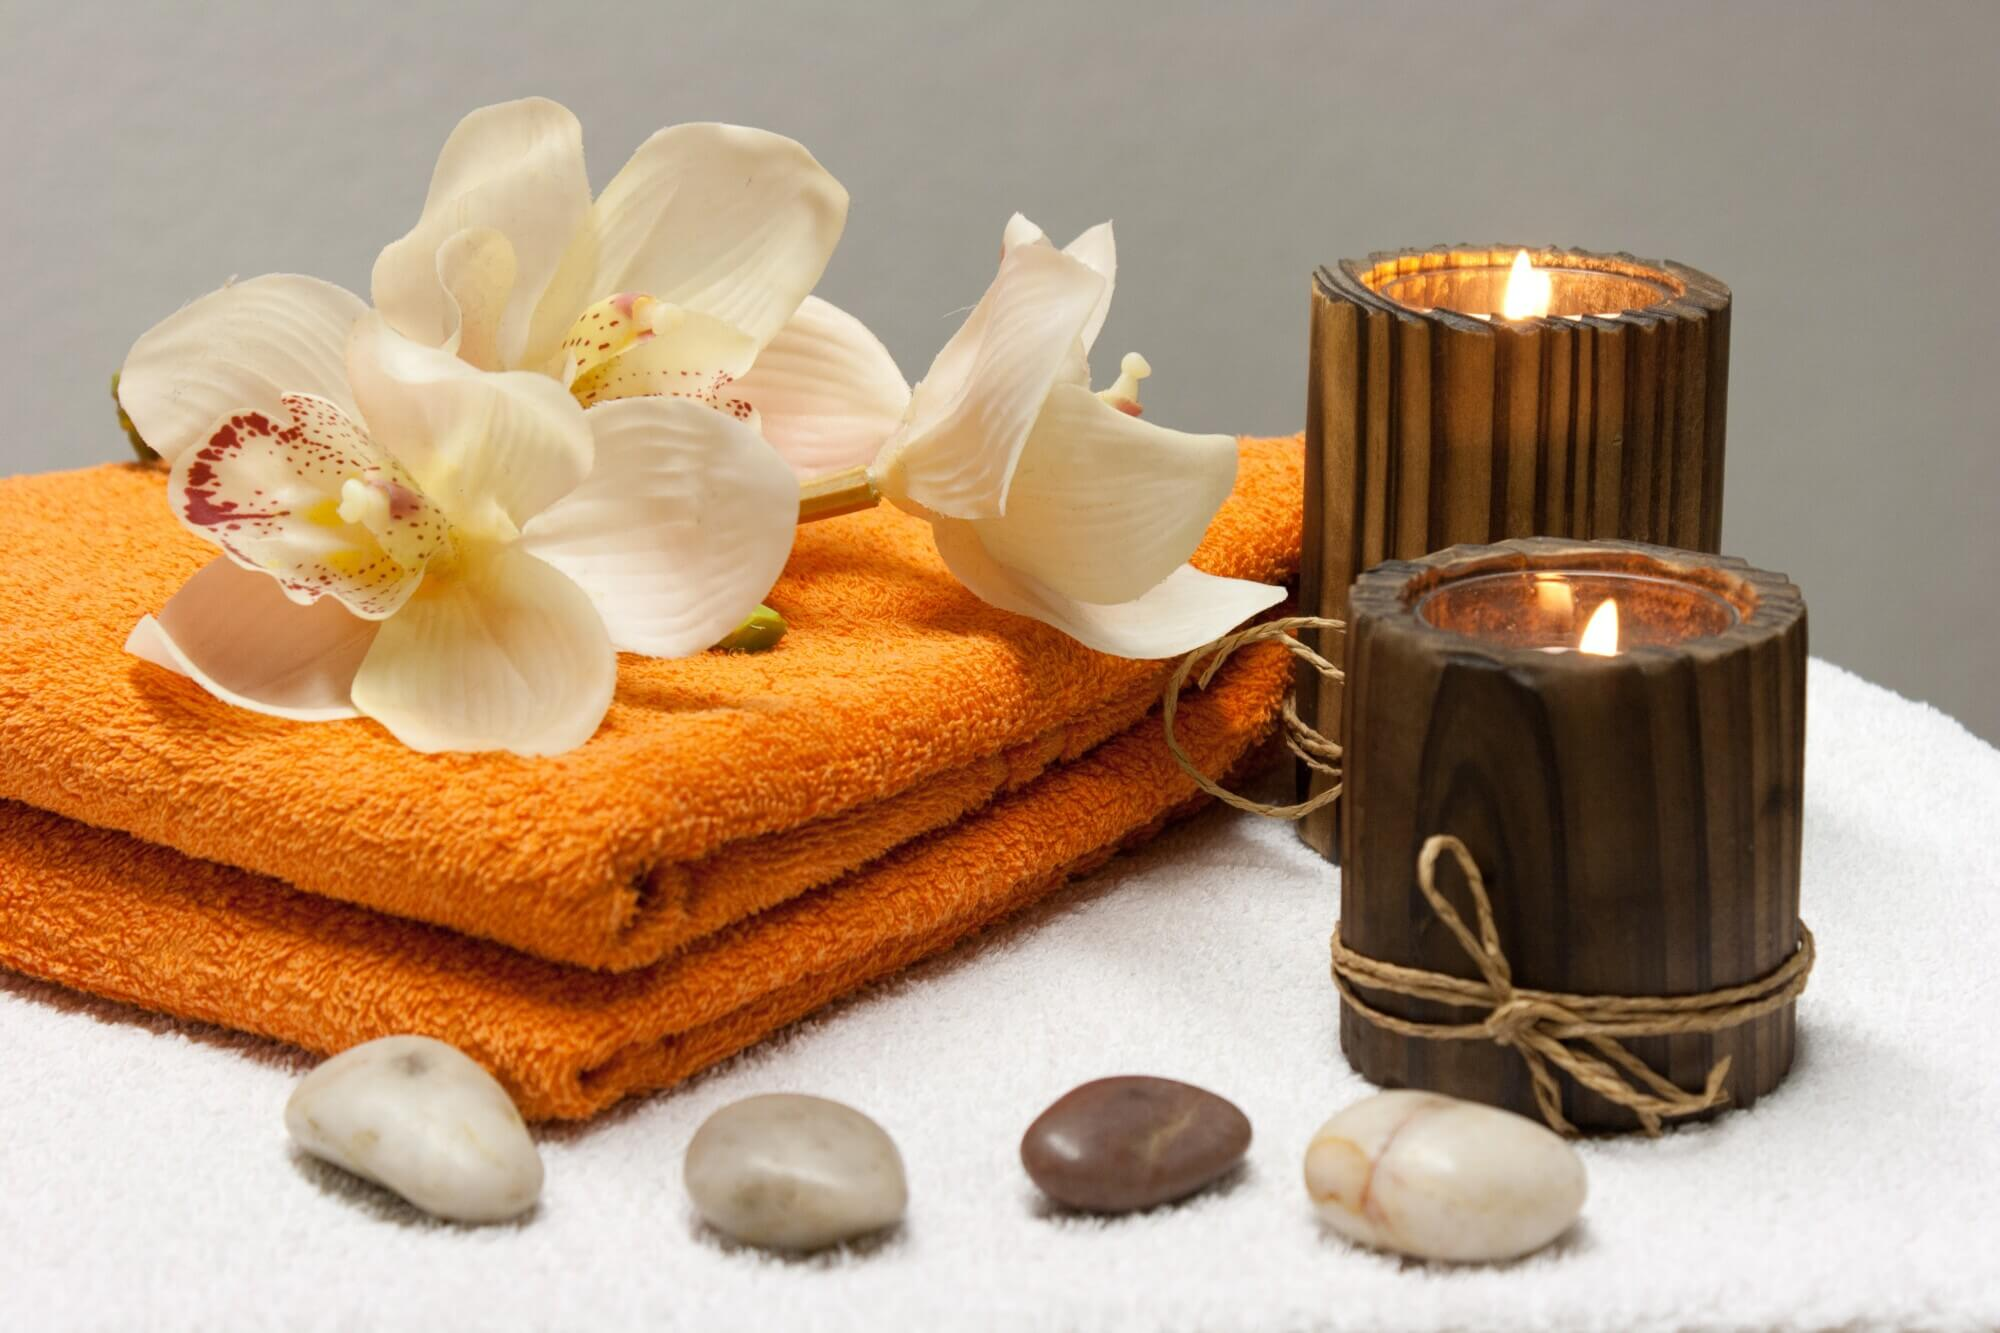 Flowers on orange towels with lit candles and some stones, a sauna or massage package